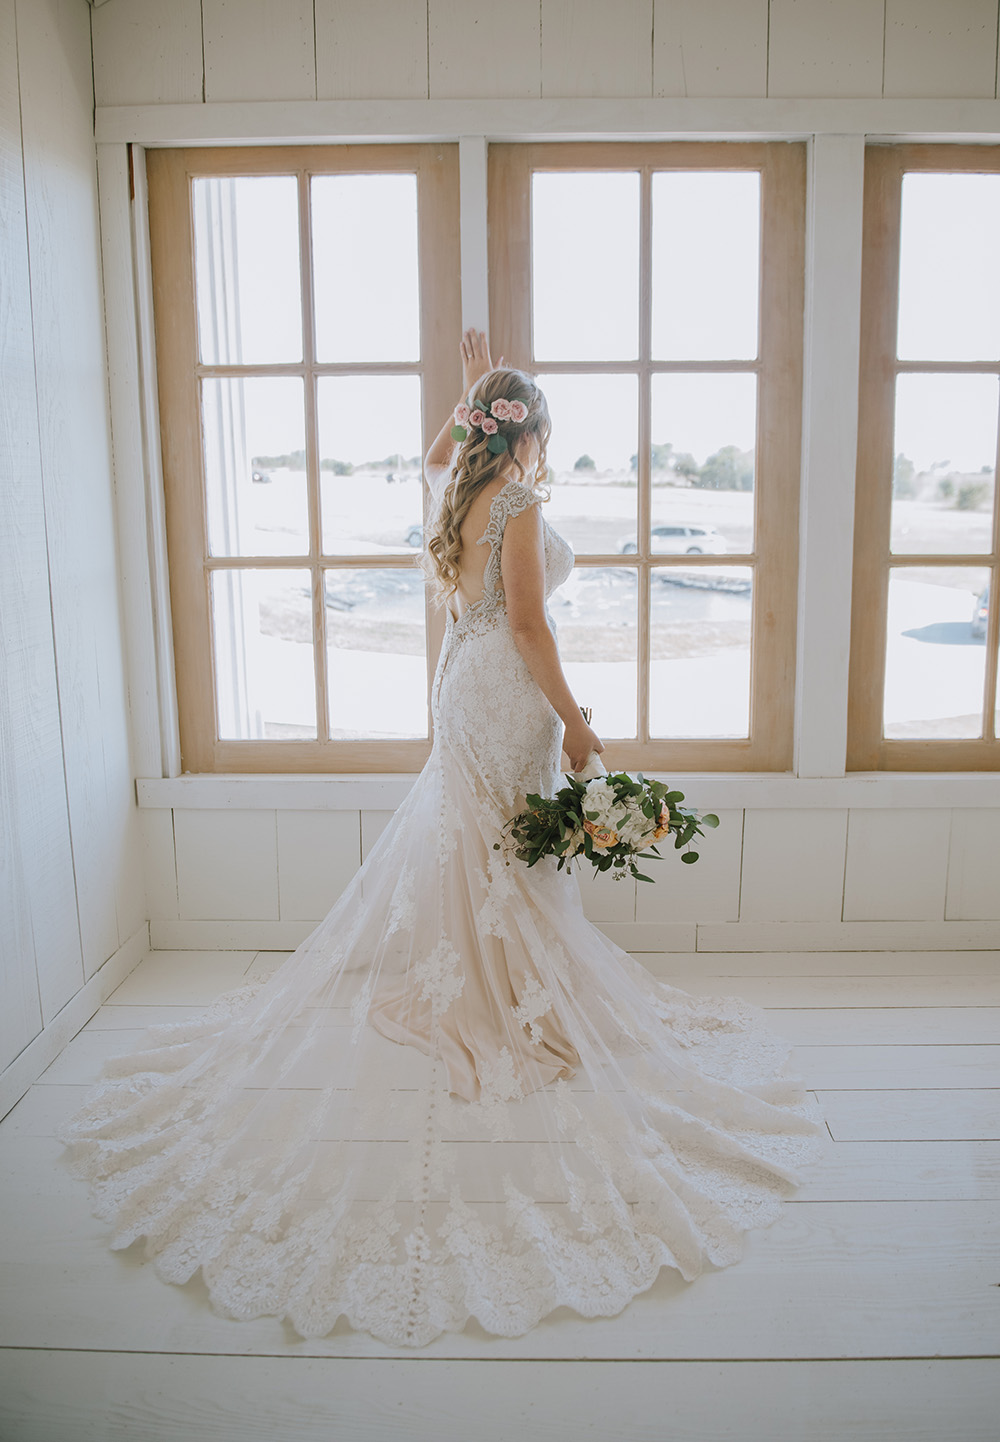 Gorgeous Lace Wedding Gown - The Grand Ivory Wedding - Leonard, Texas Wedding Venue